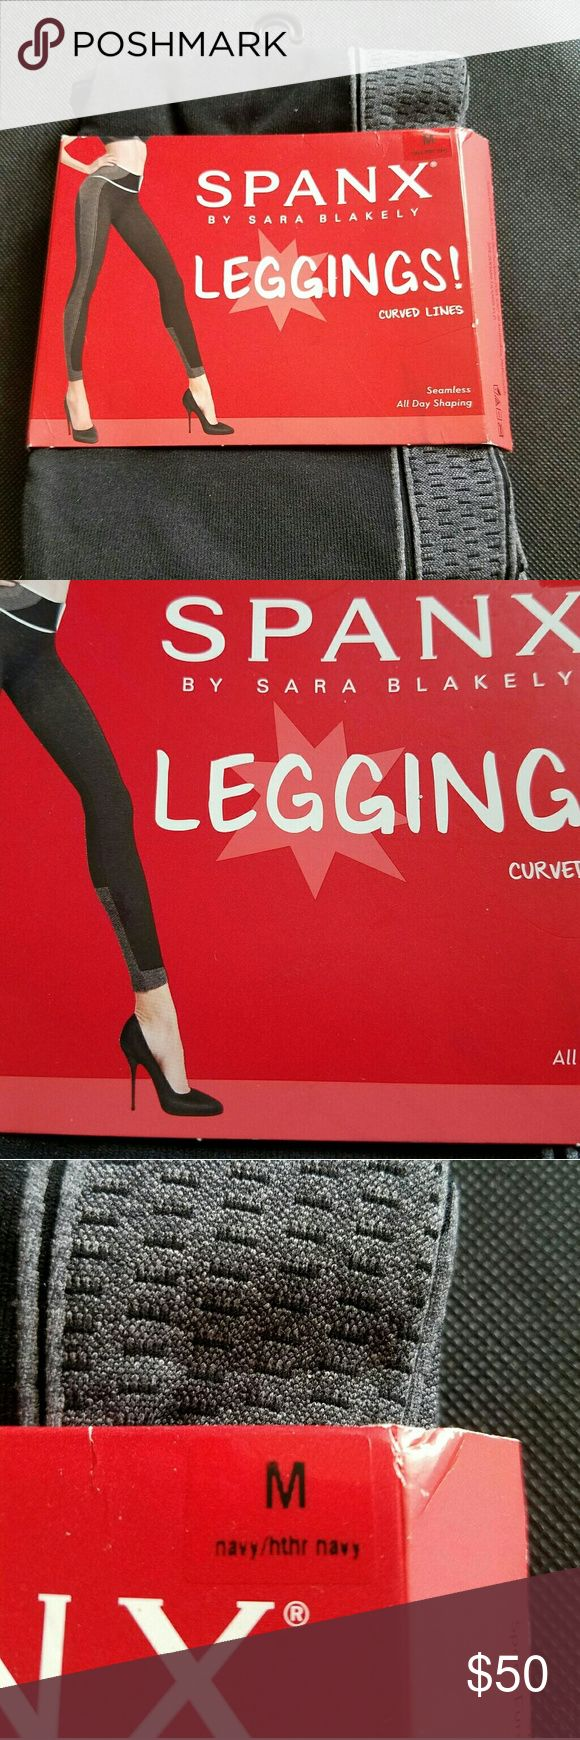 SPANX Leggings Curved Lines Seamless SZ Medium These are are brand new Spanx Leggings   Full Coverage Waistband Flattens stomach   Full length hits ankle   Comfortable Seamless Design   Size Medium   Measurements  Waist_ 31 to 33 inches Hips_38 to 40.5 inches SPANX Pants Leggings